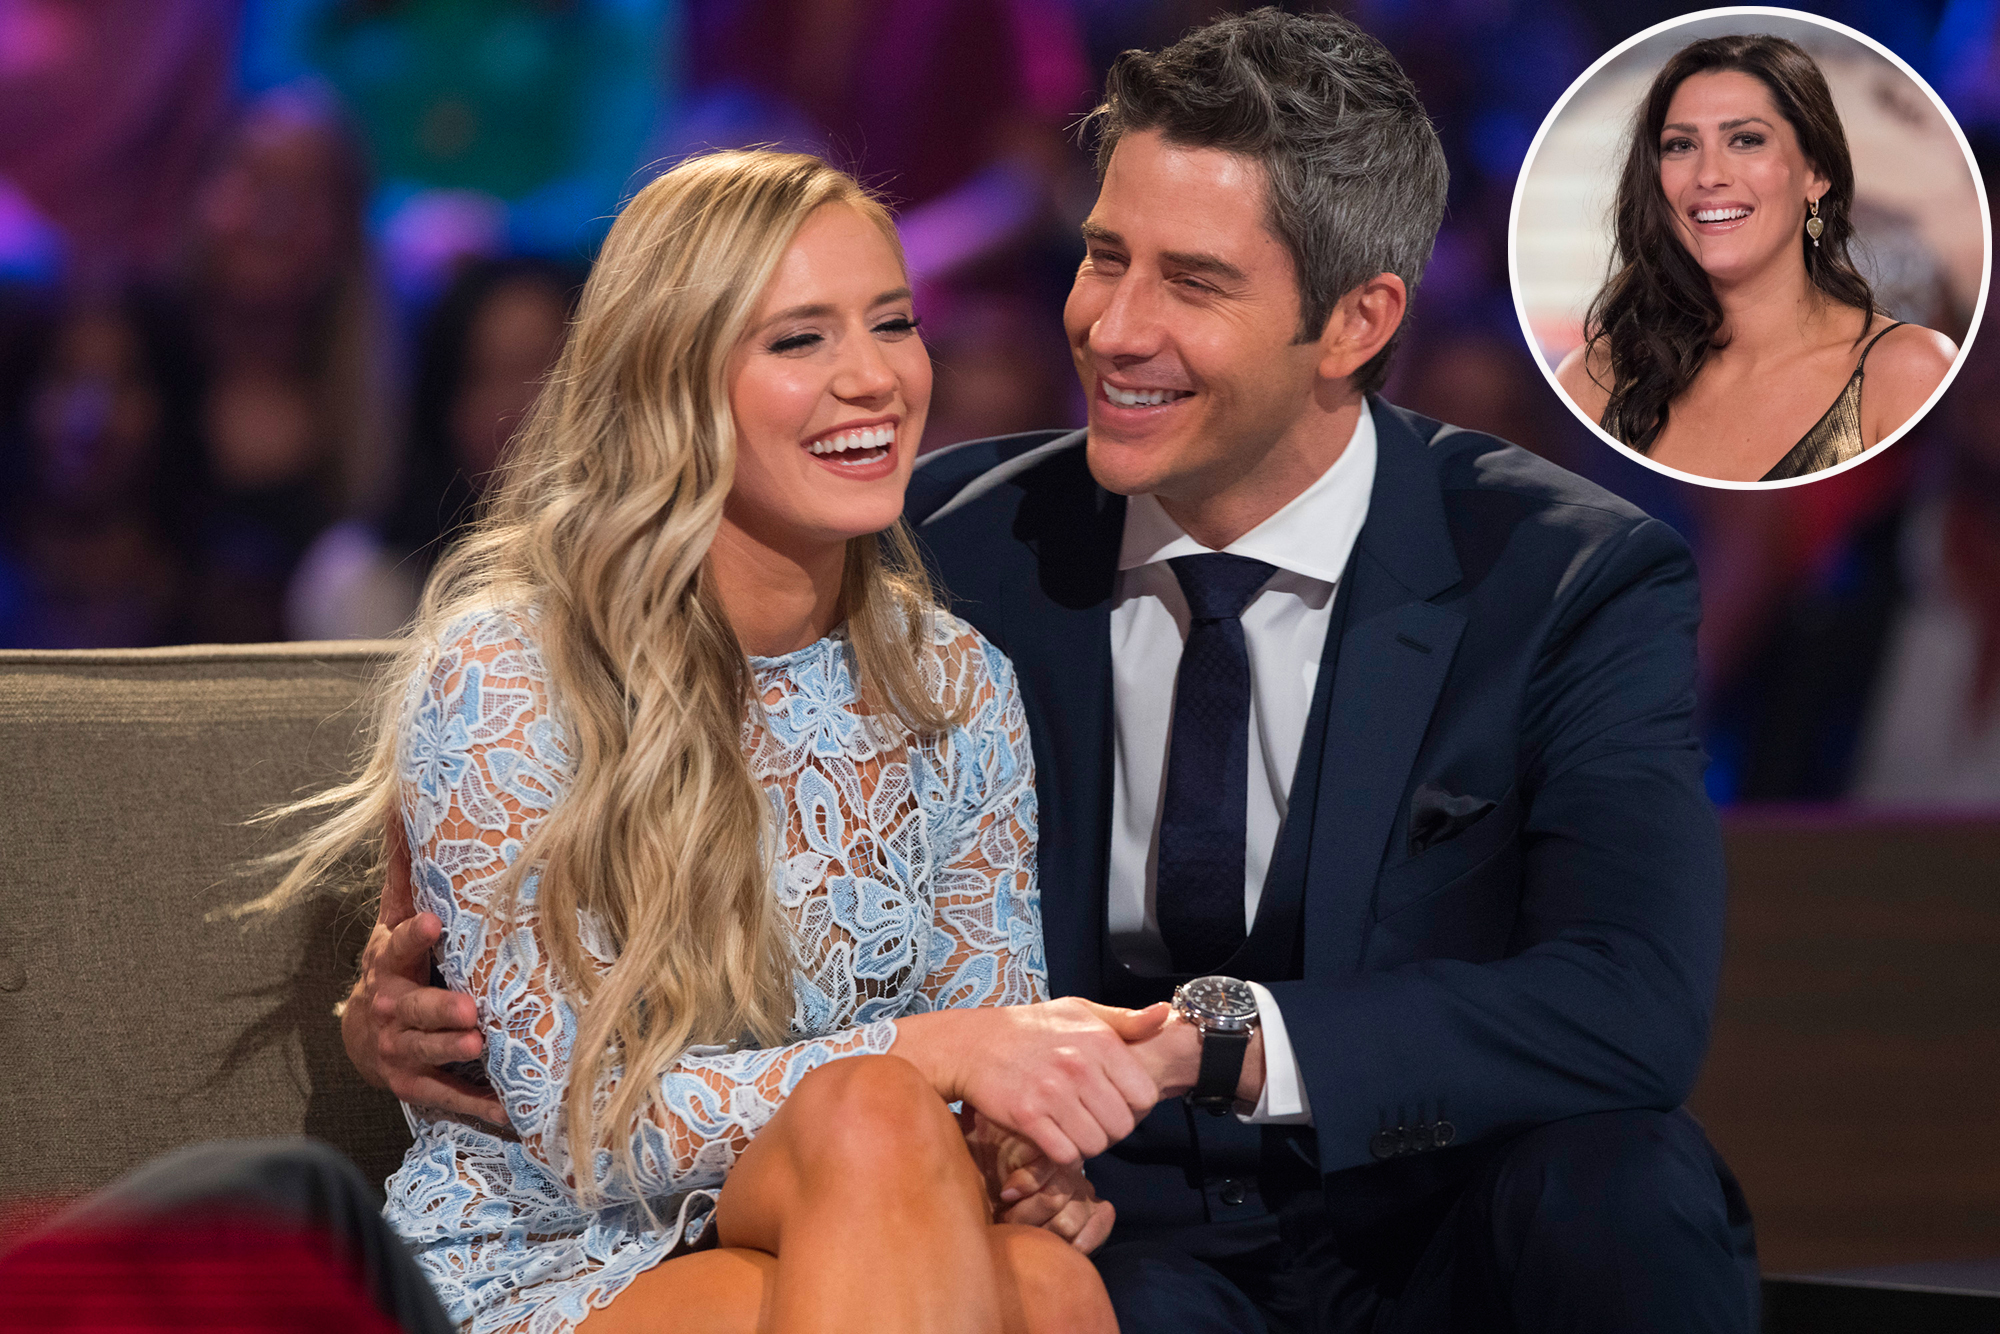 'Bachelor' Arie Luyendyk Jr. Feels Betrayed by Producers Over